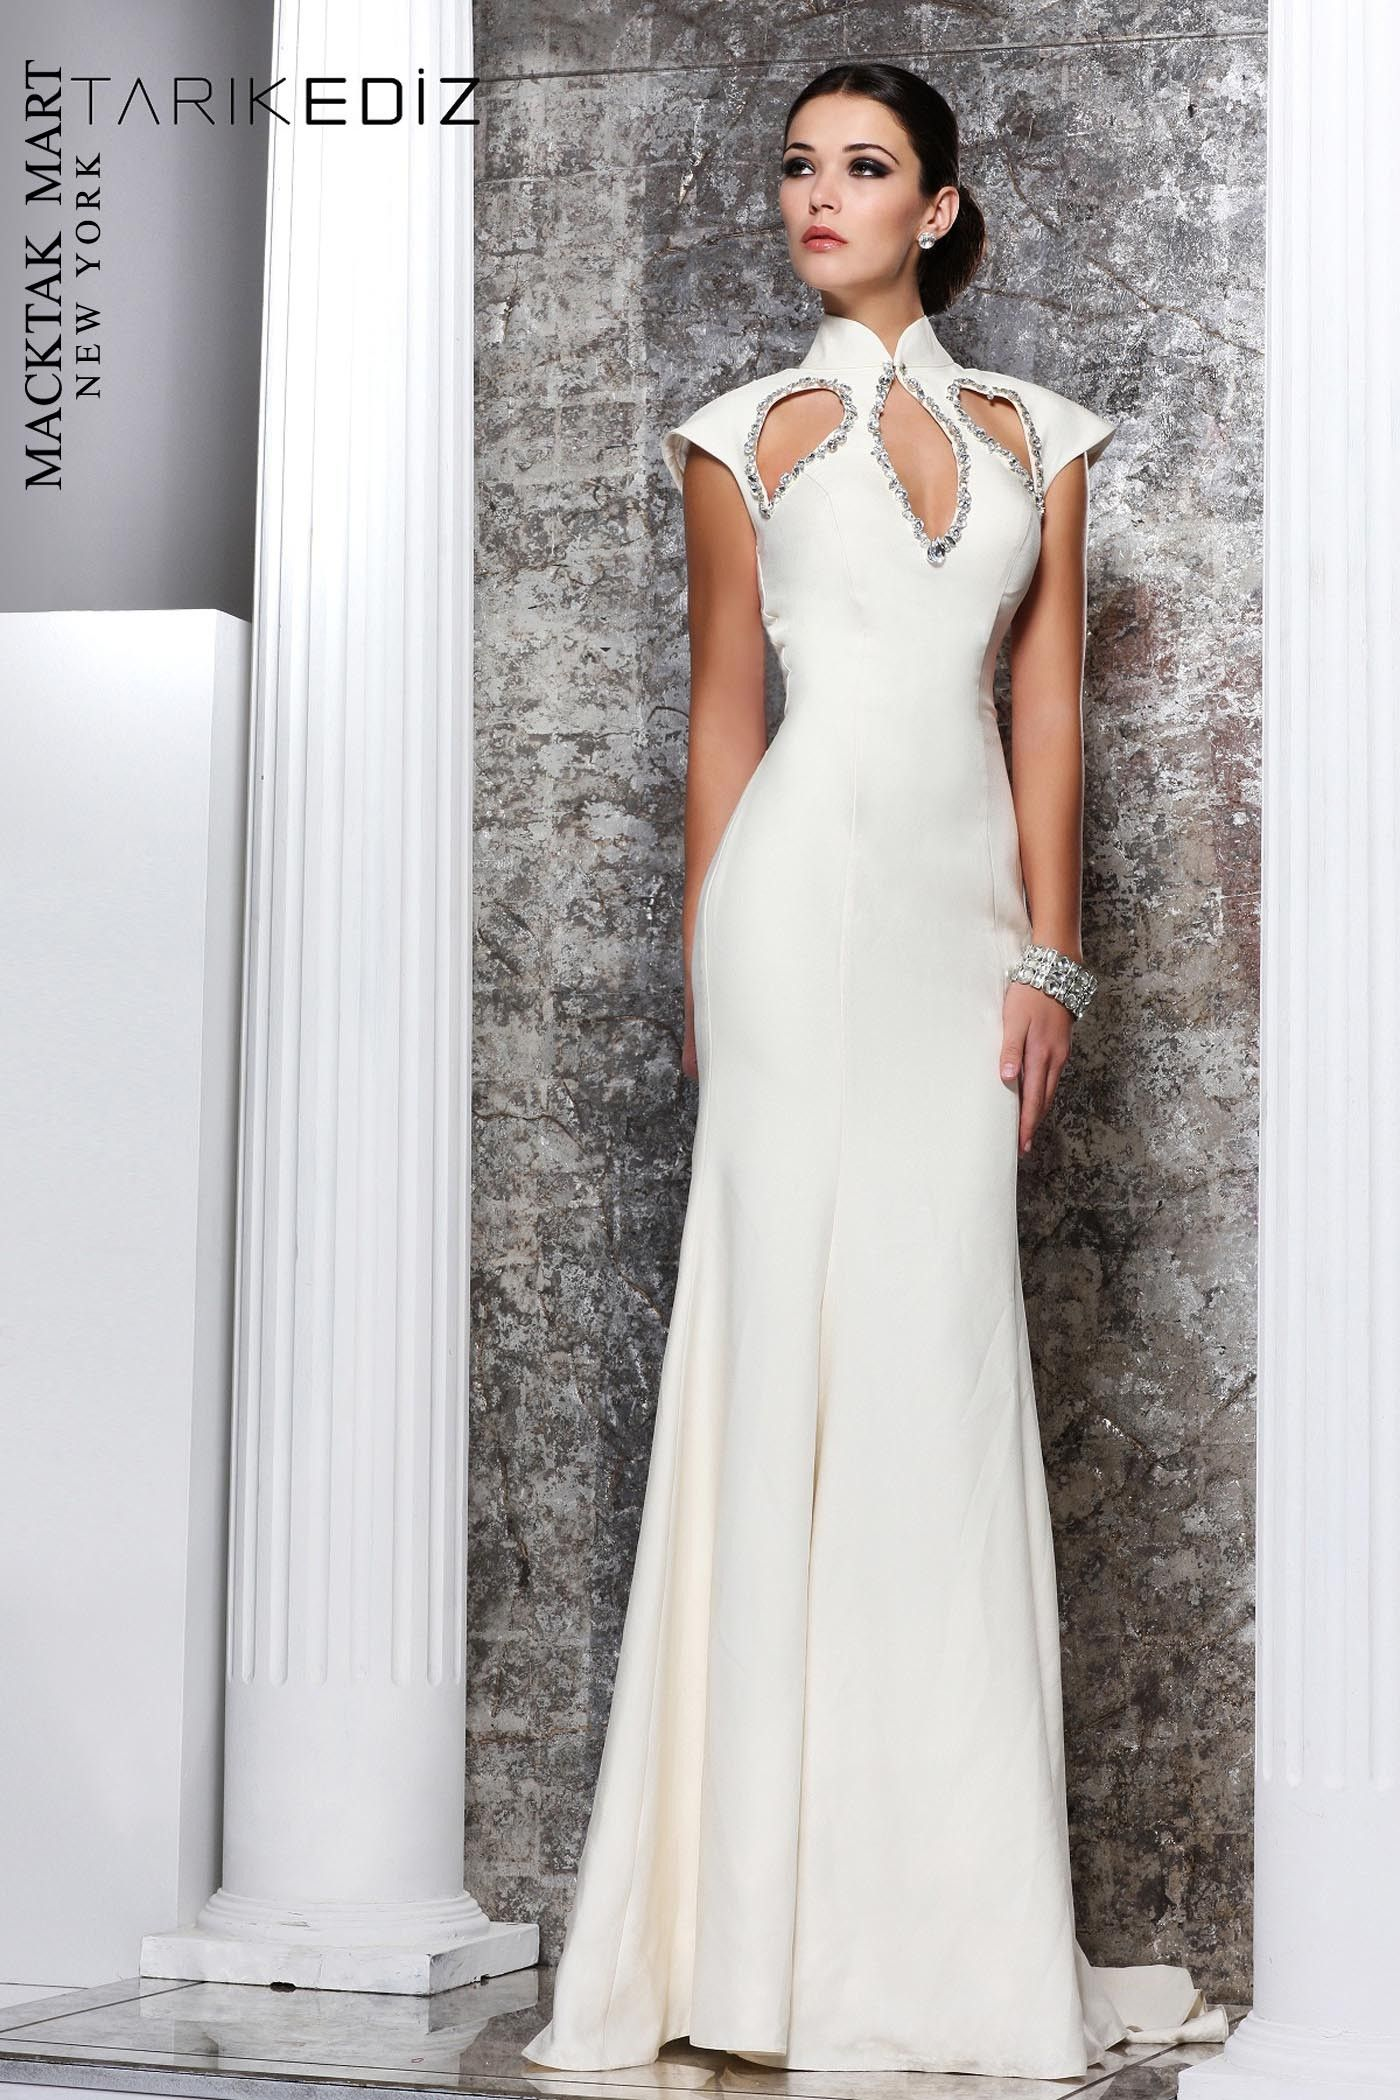 Tarik Ediz 92107 Dress $730.00 | MackTak Wedding Dresses | Pinterest ...